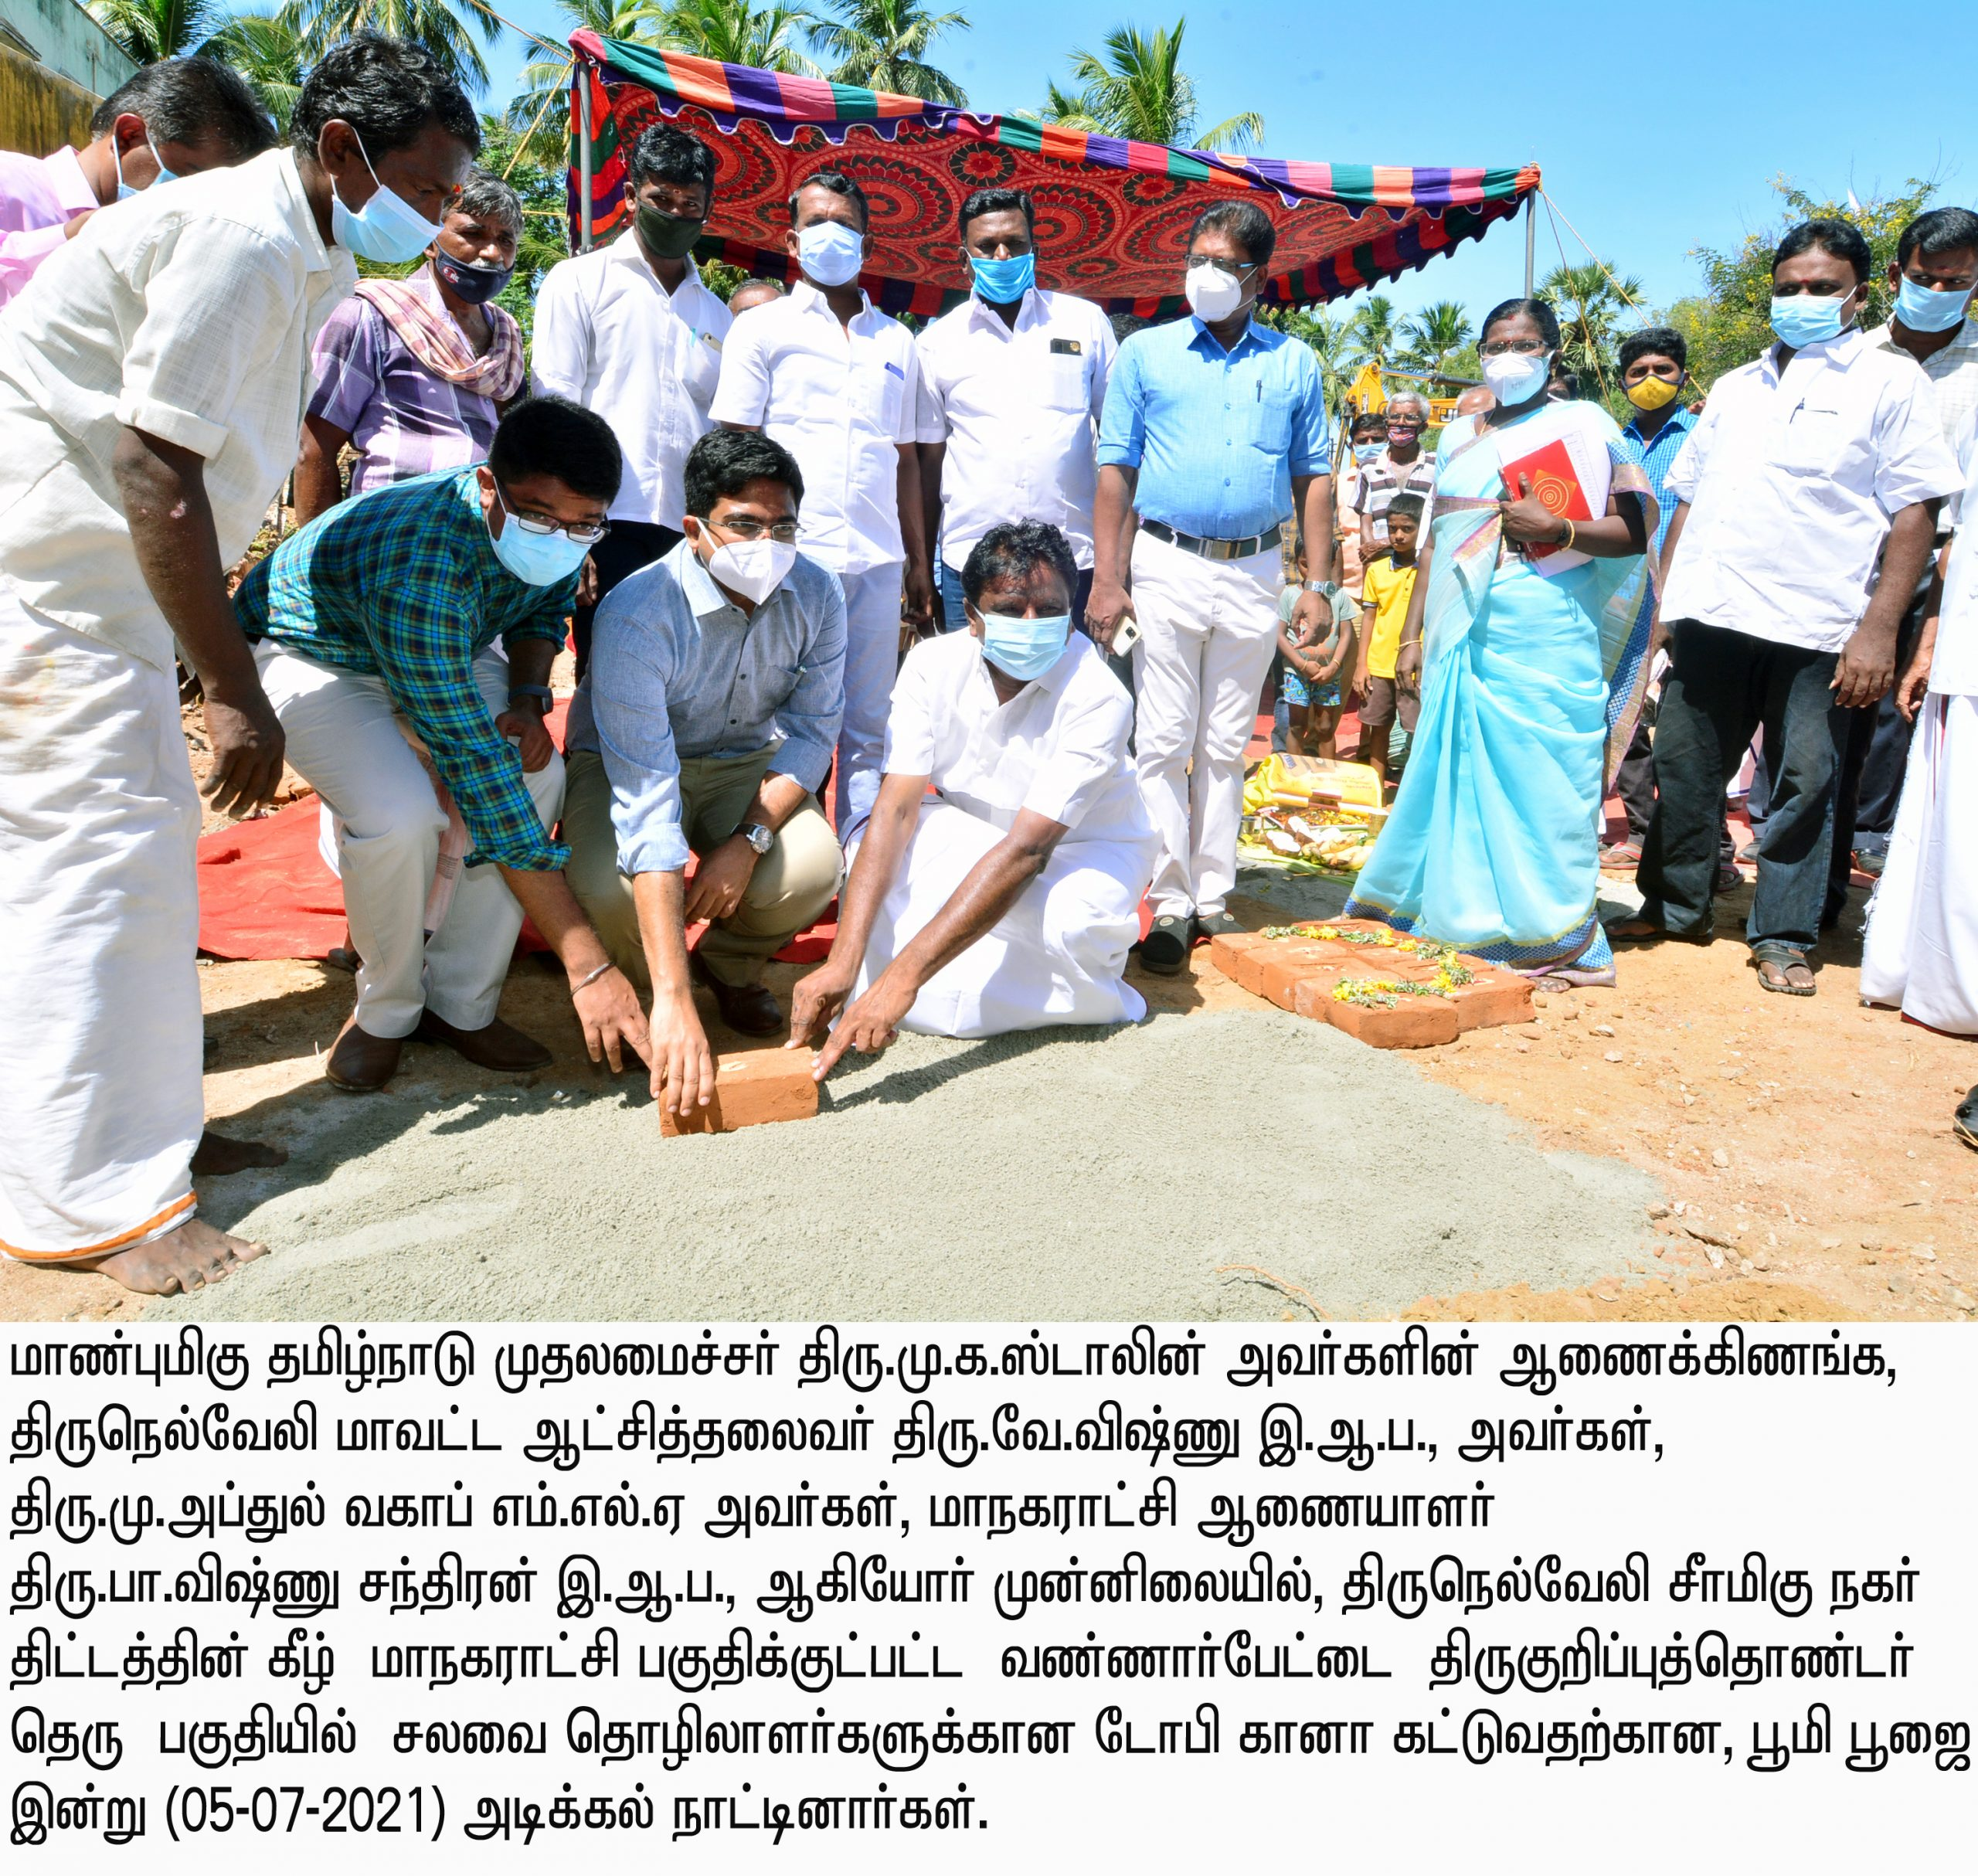 District Collector initiated the construction of Laundry in Vannarpettai